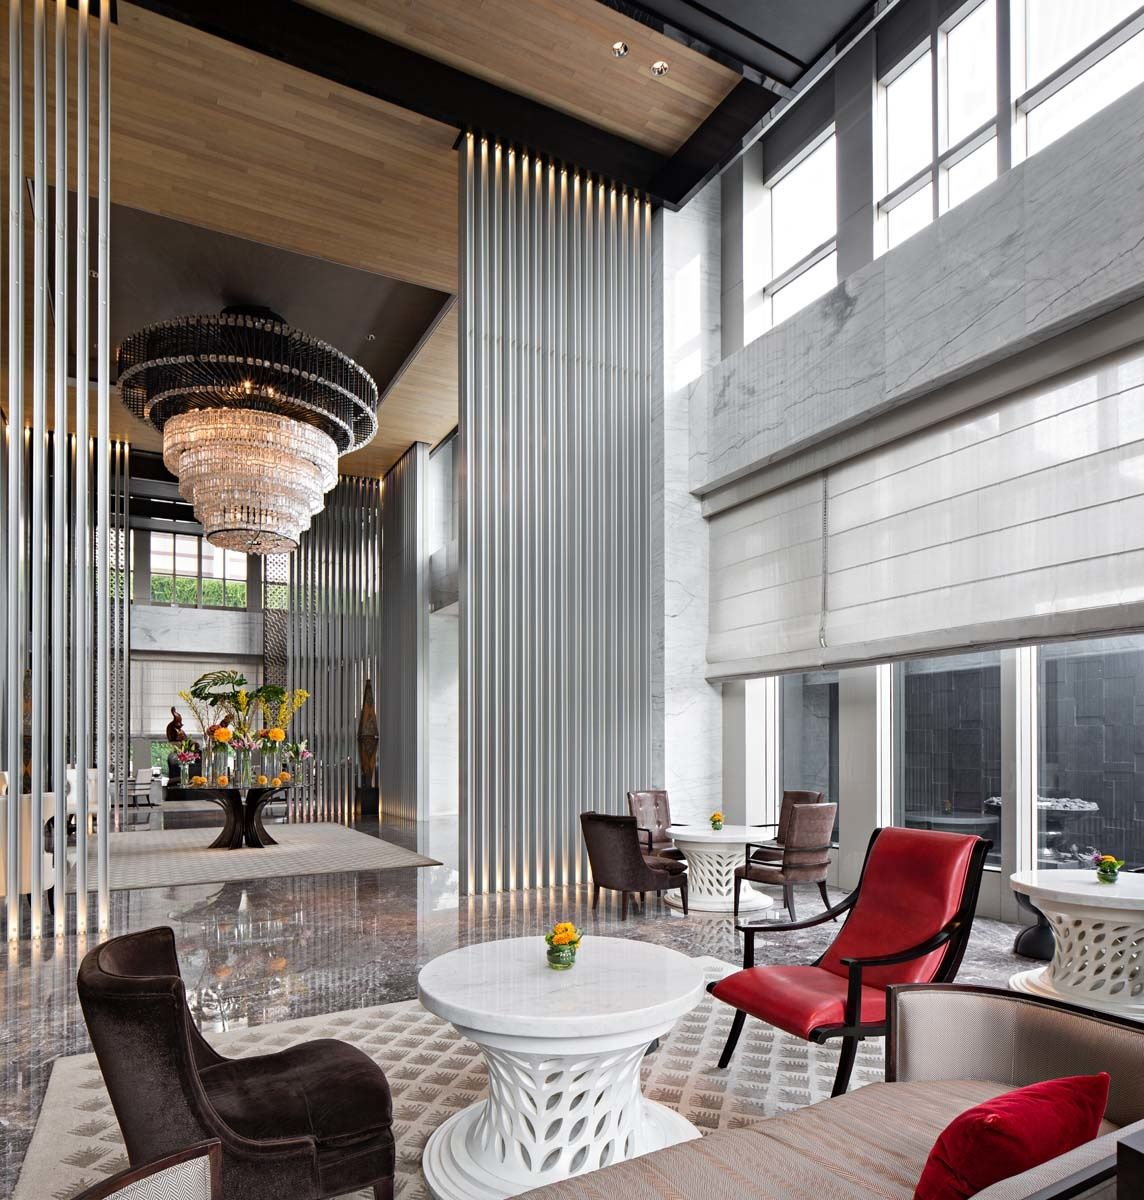 Keraton at the plaza, luxury collections hotel, lobby design by SCDA ...